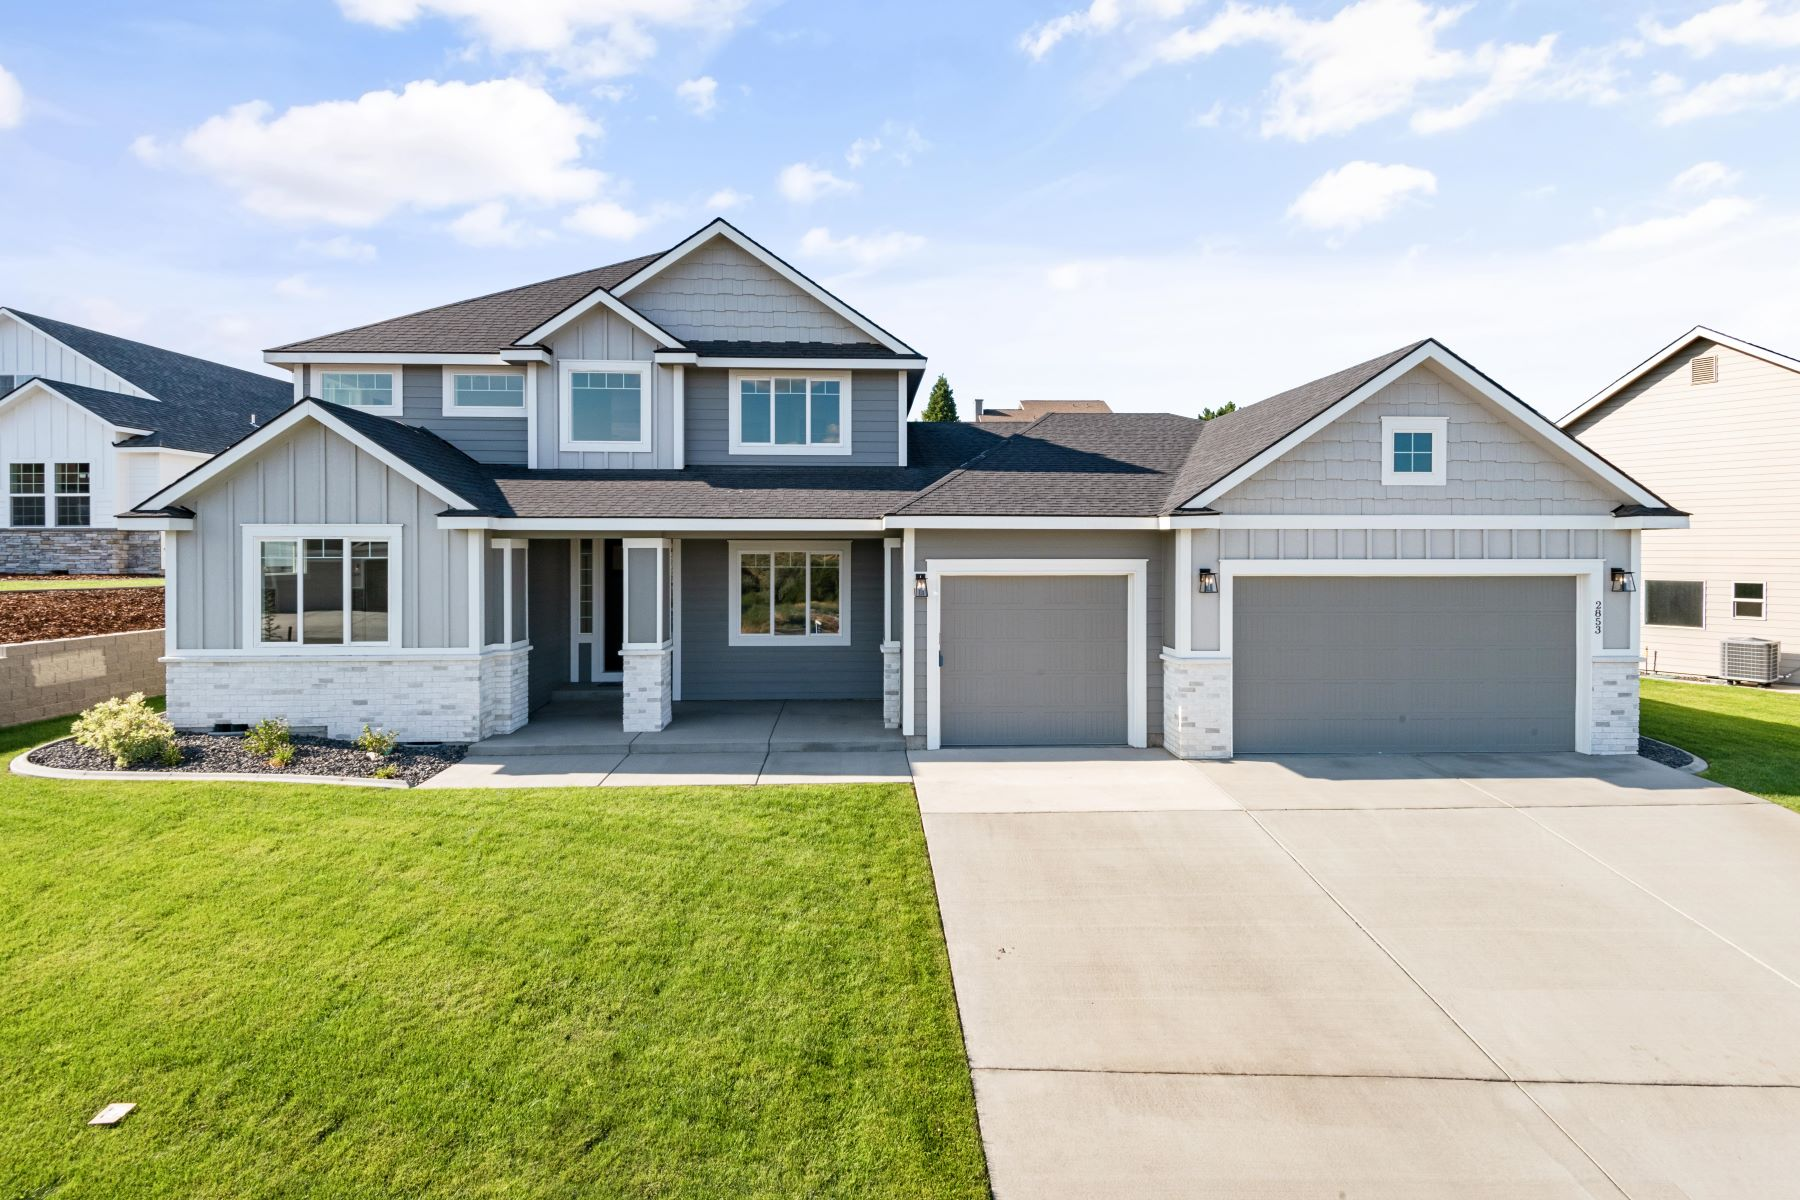 Single Family Homes for Sale at 5 Bedrooms plus Den 2853 Mackenzie Court Richland, Washington 99352 United States